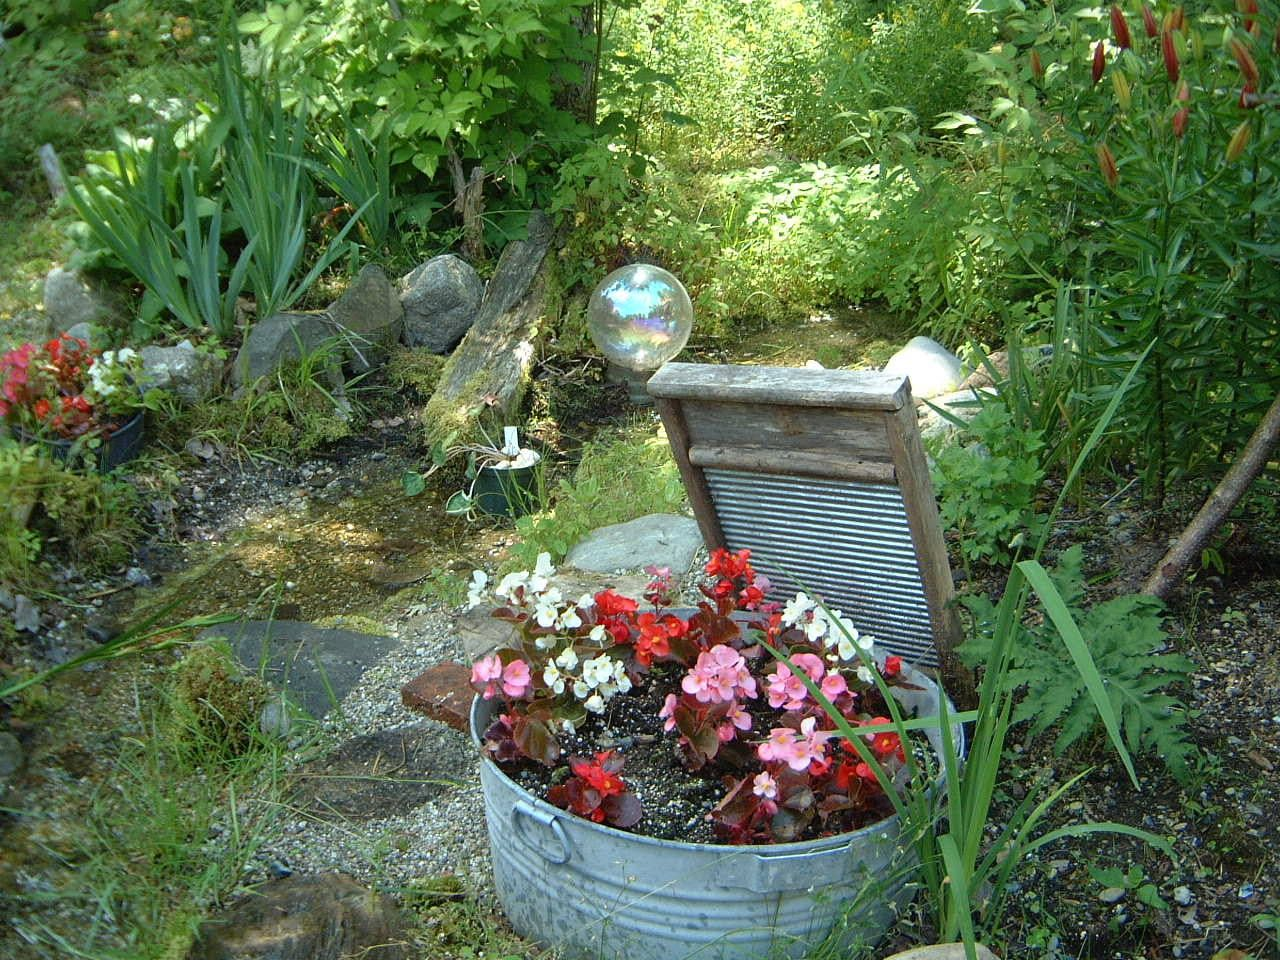 Garden Decoration Pictures ideas for decorating your garden with personal and everyday items